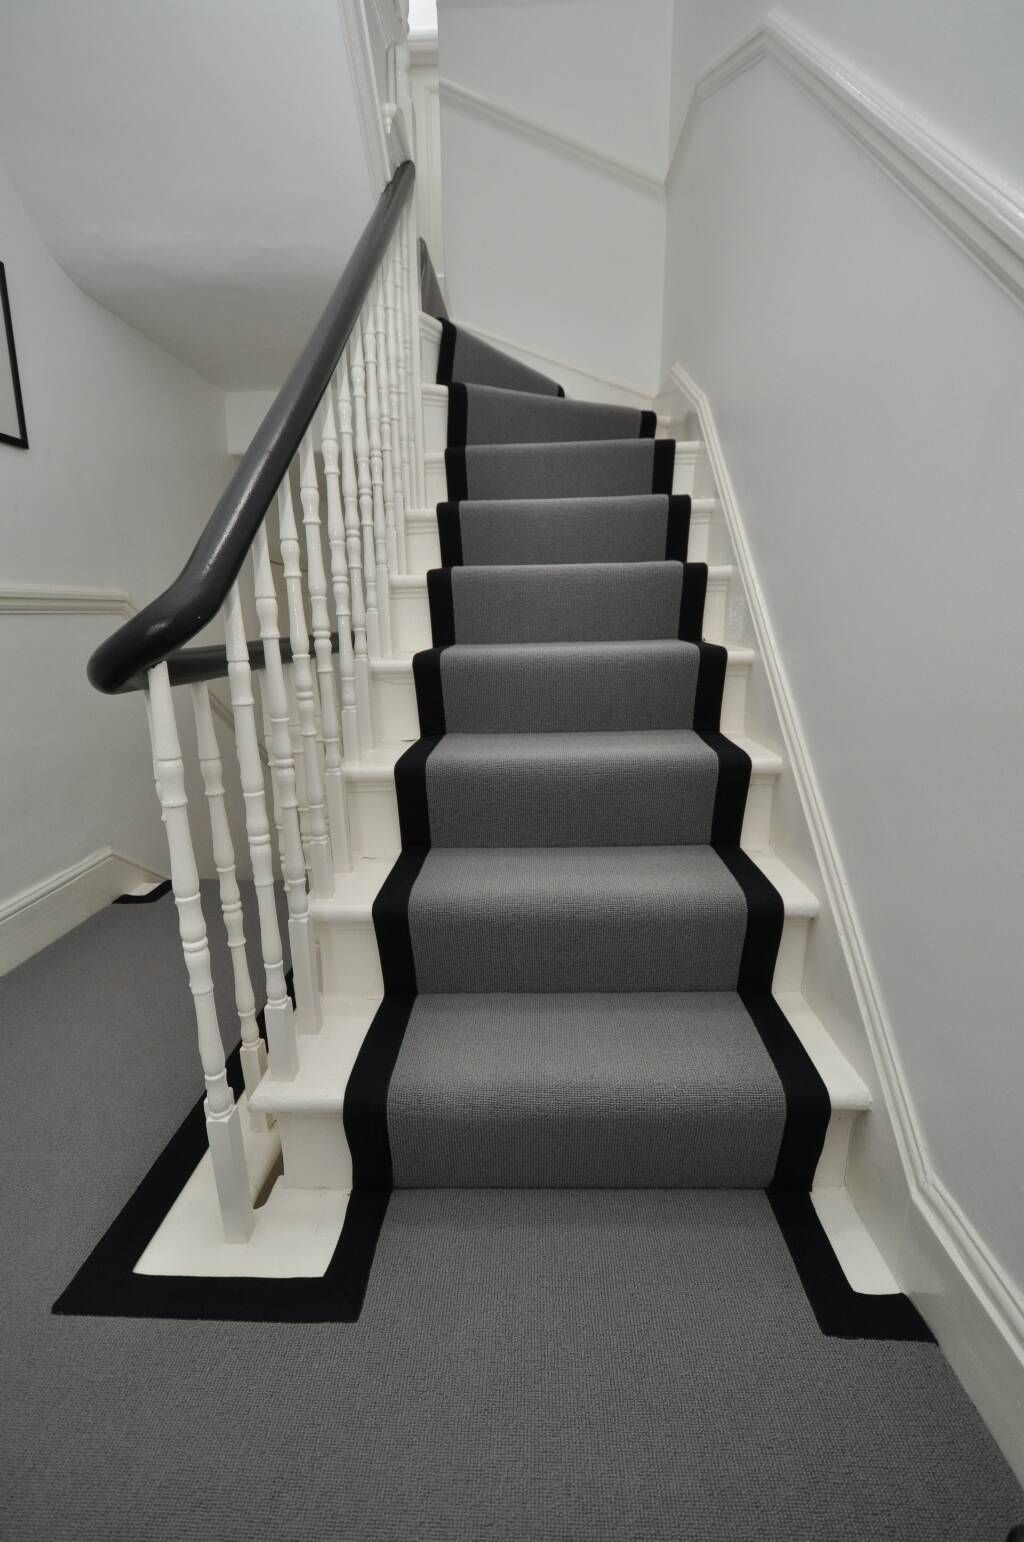 Best Grey Stair Runner With Black Binding Tape By Bowloom Ltd 400 x 300